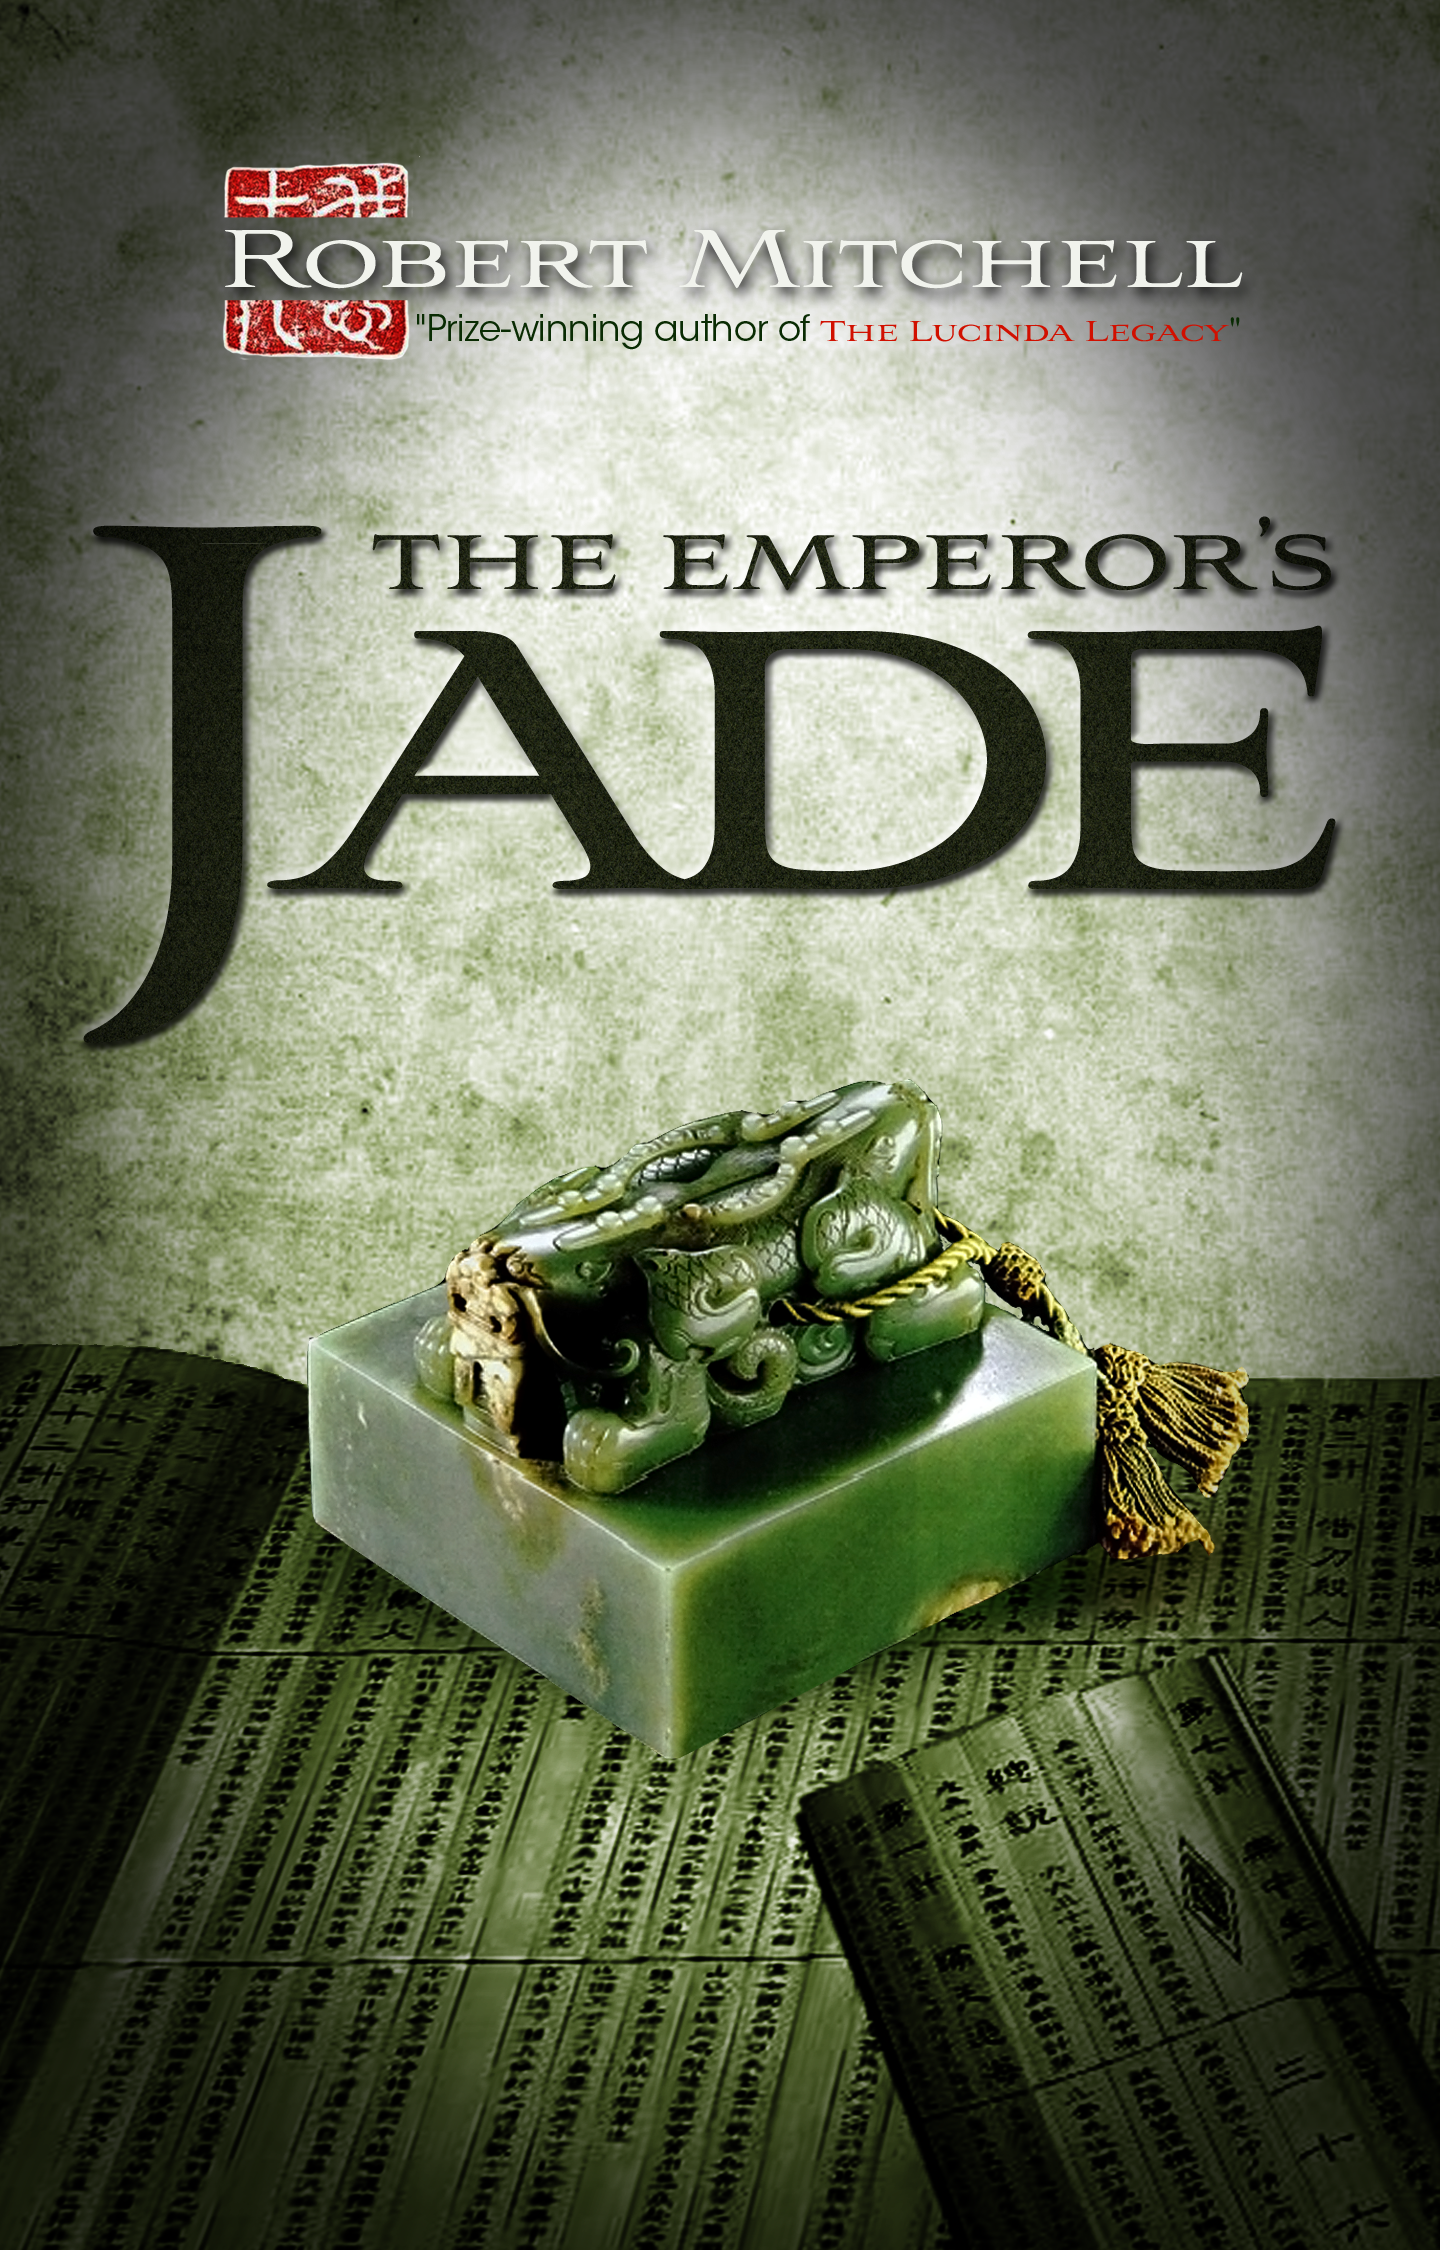 Book Cover Design by zesthar - Entry No. 72 in the Book Cover Design Contest Book Cover Design for The Emperor's Jade.